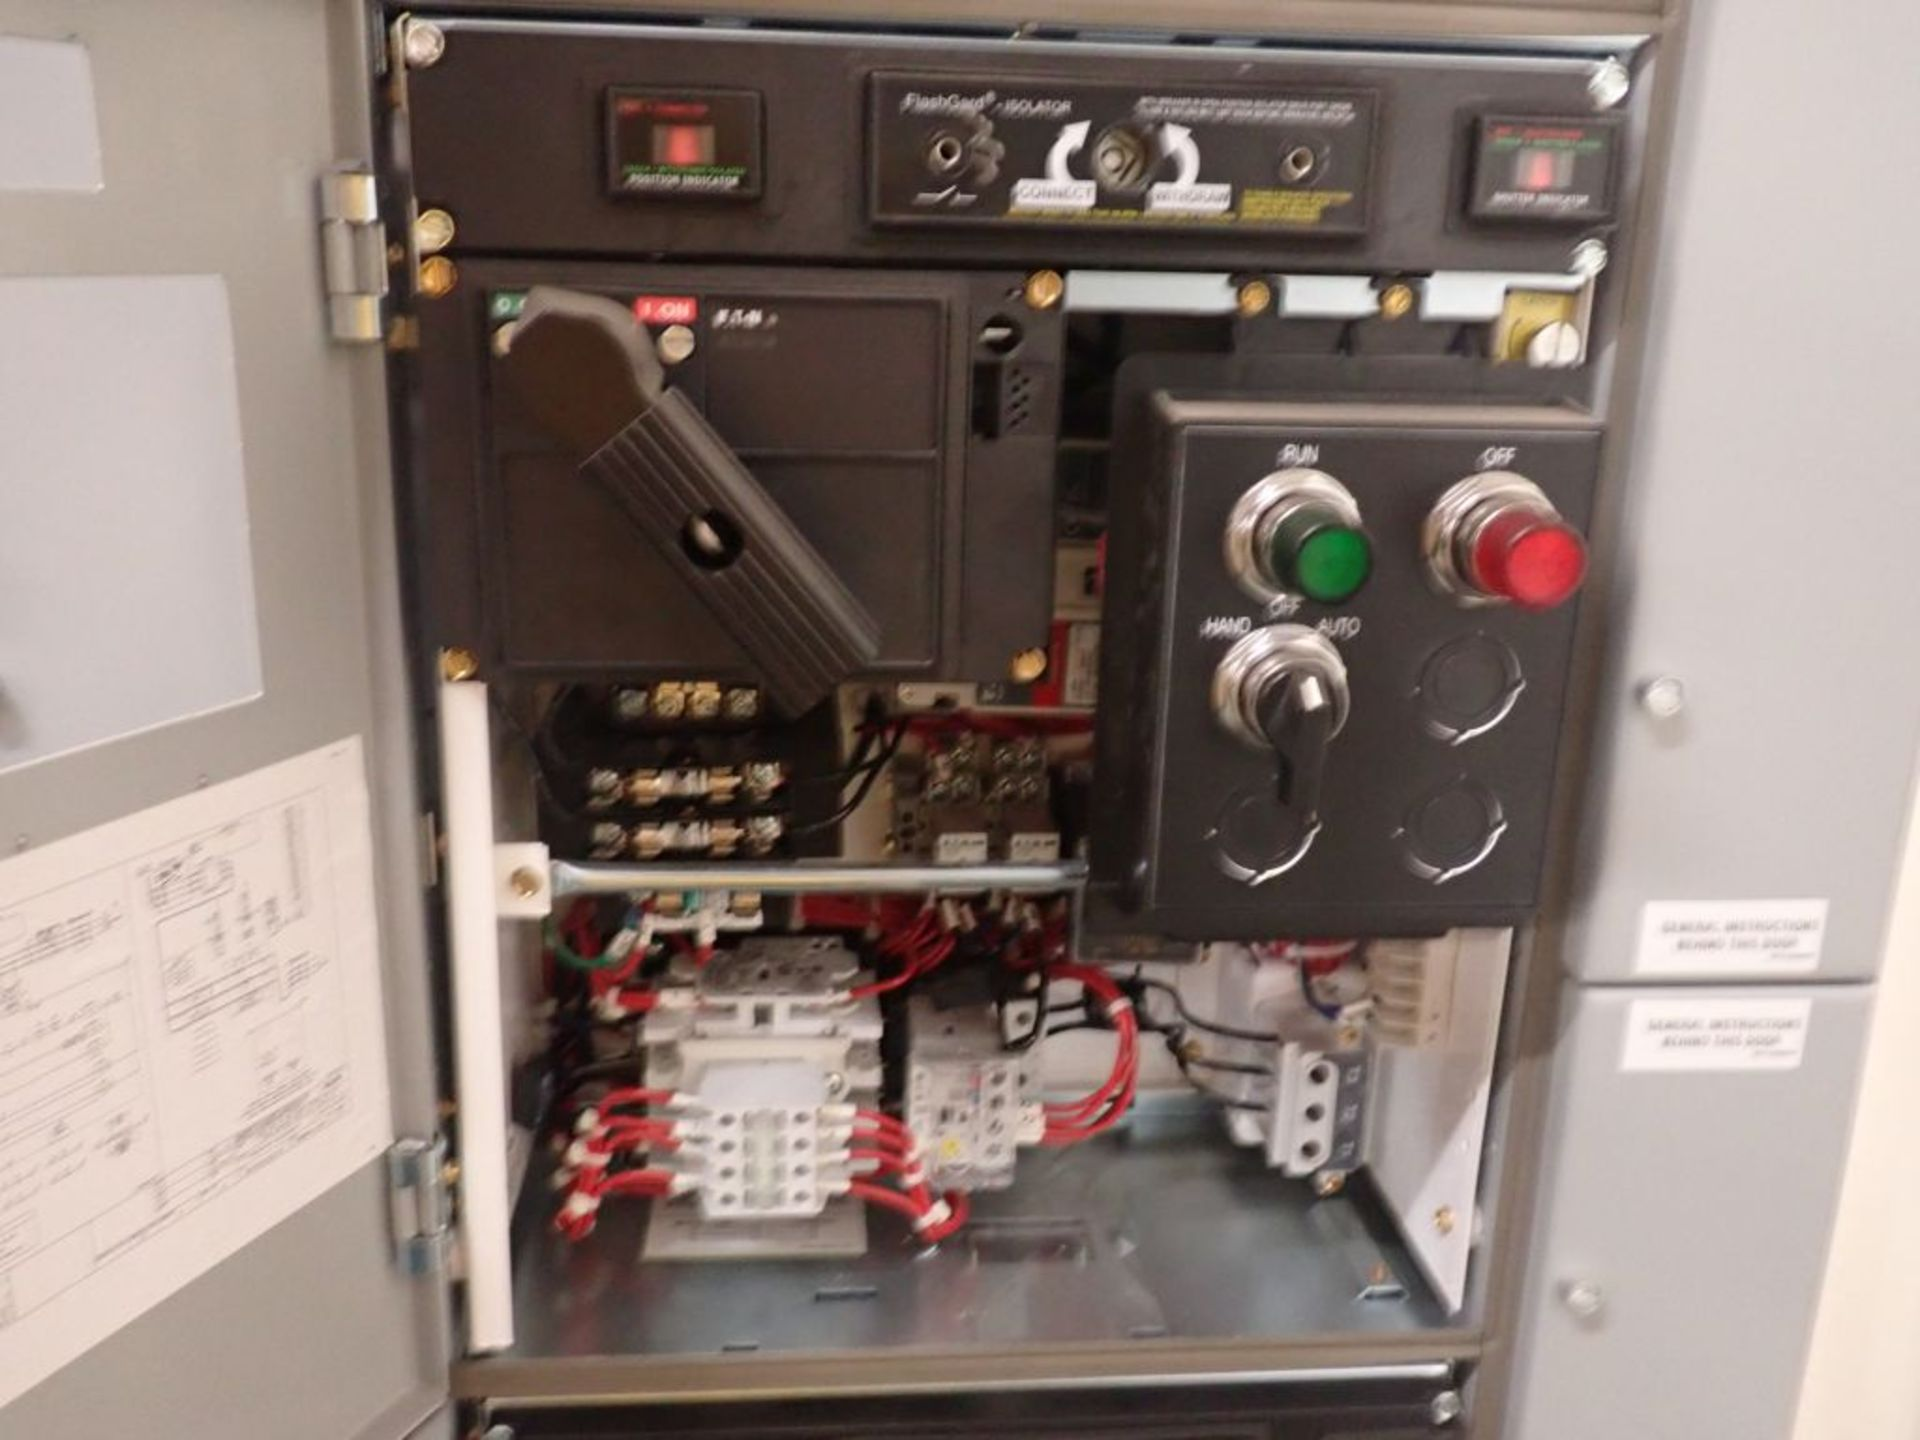 Eaton Freedom Flashgard Motor Control Center w/Components | (5) F206-15A-10HP; (4) F206-30A-10HP; ( - Image 69 of 84